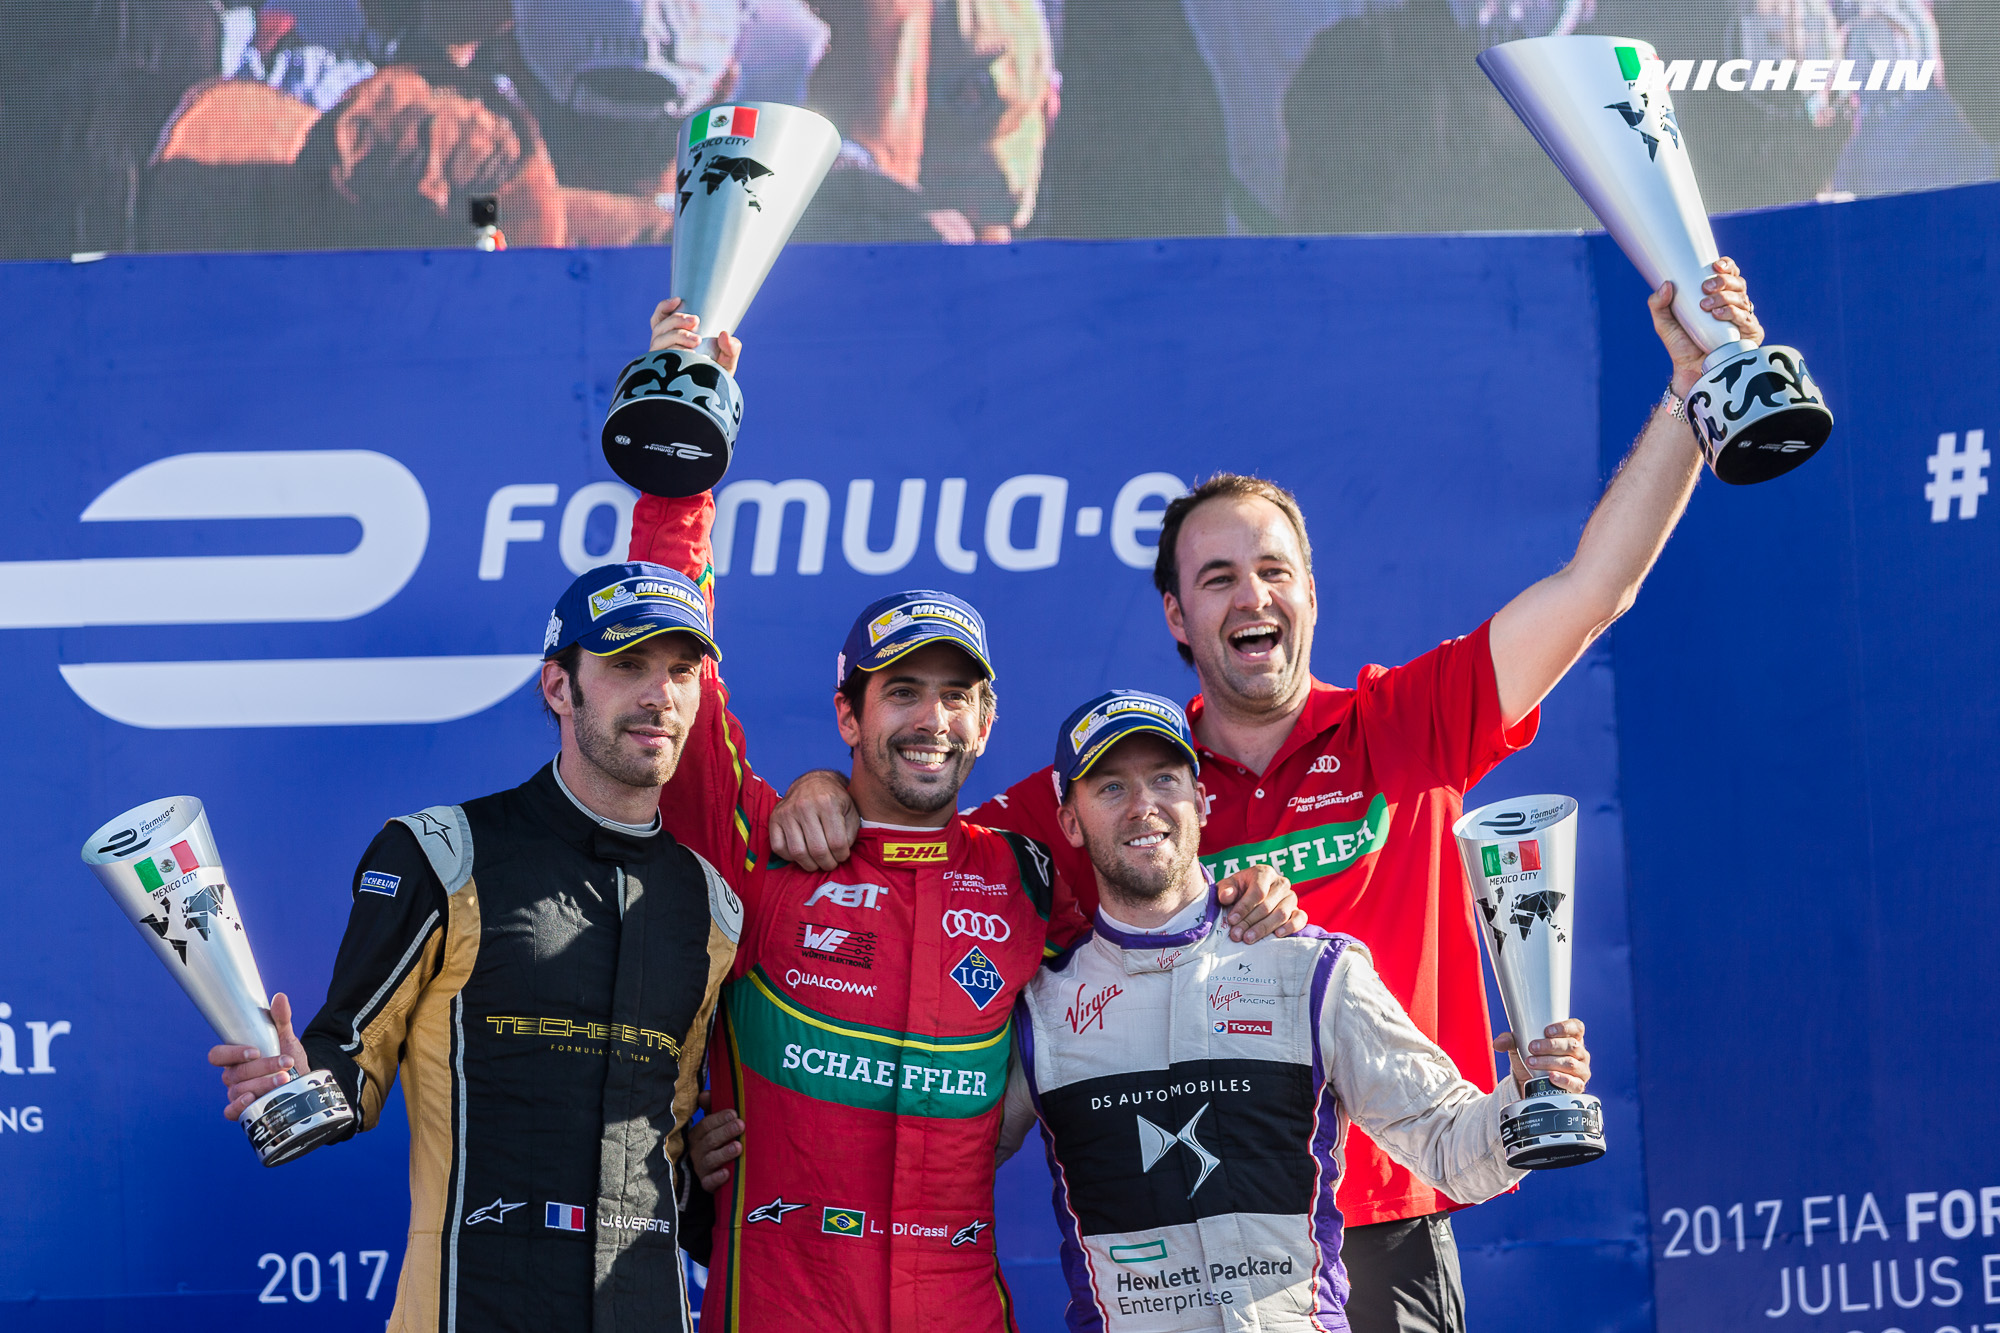 Mexico City ePrix: di Grassi claims surprise win